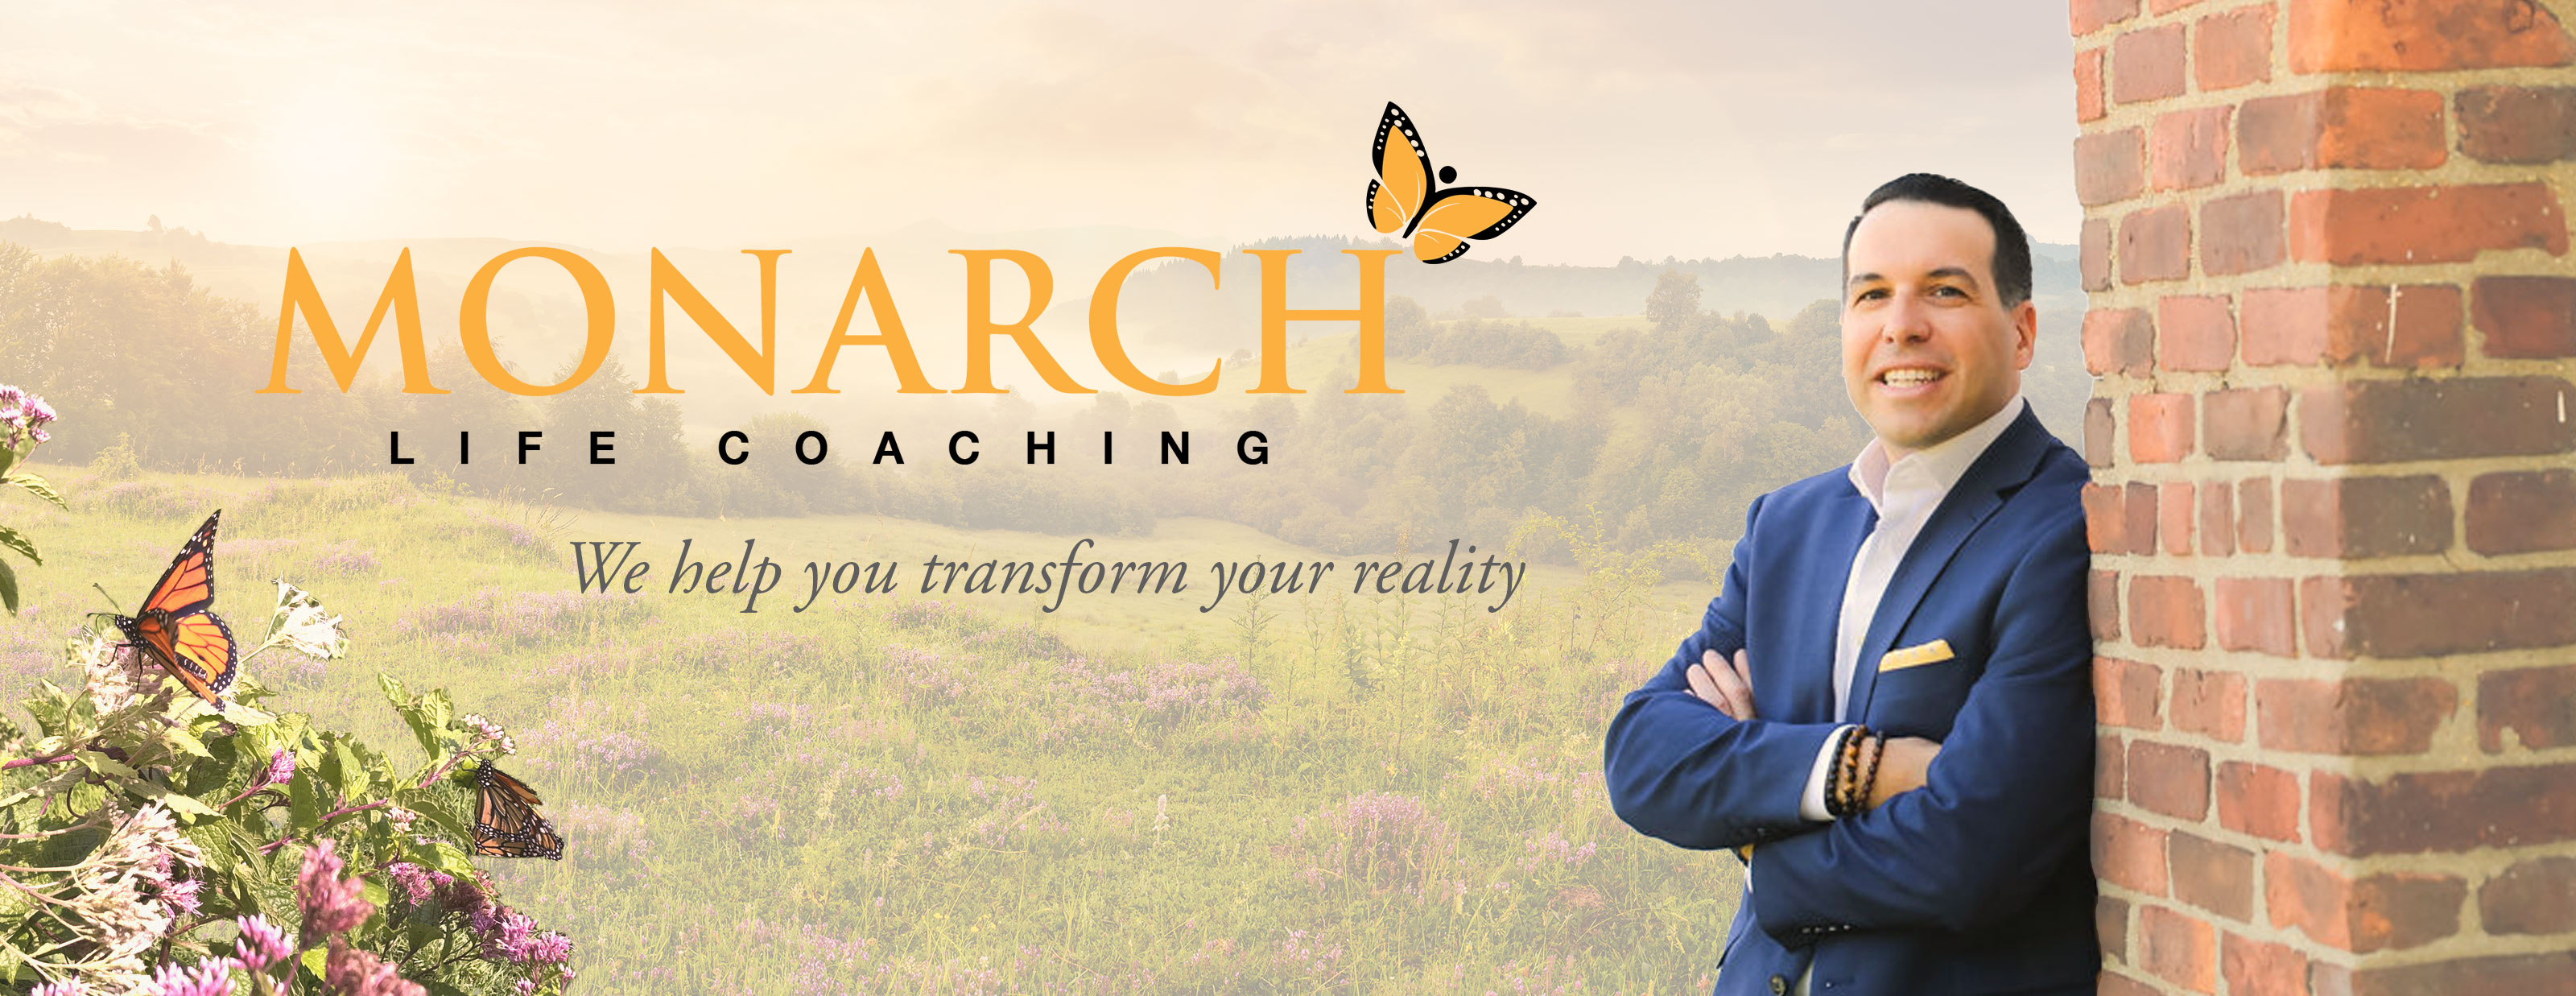 Monarch Life Coaching Tom Marino Life Coach | Transform your reality